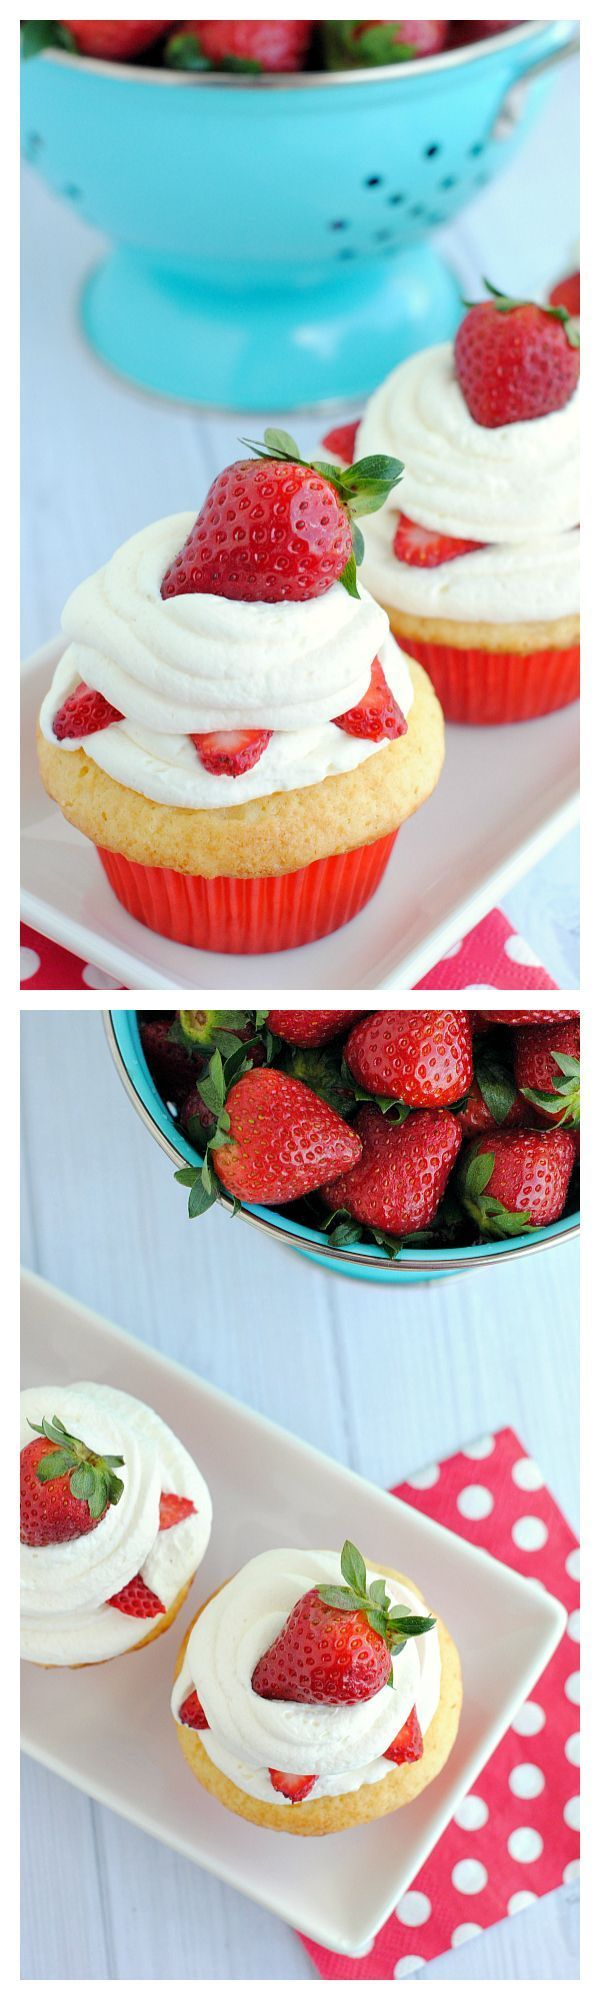 Strawberry Shortcake Cupcakes Recipe